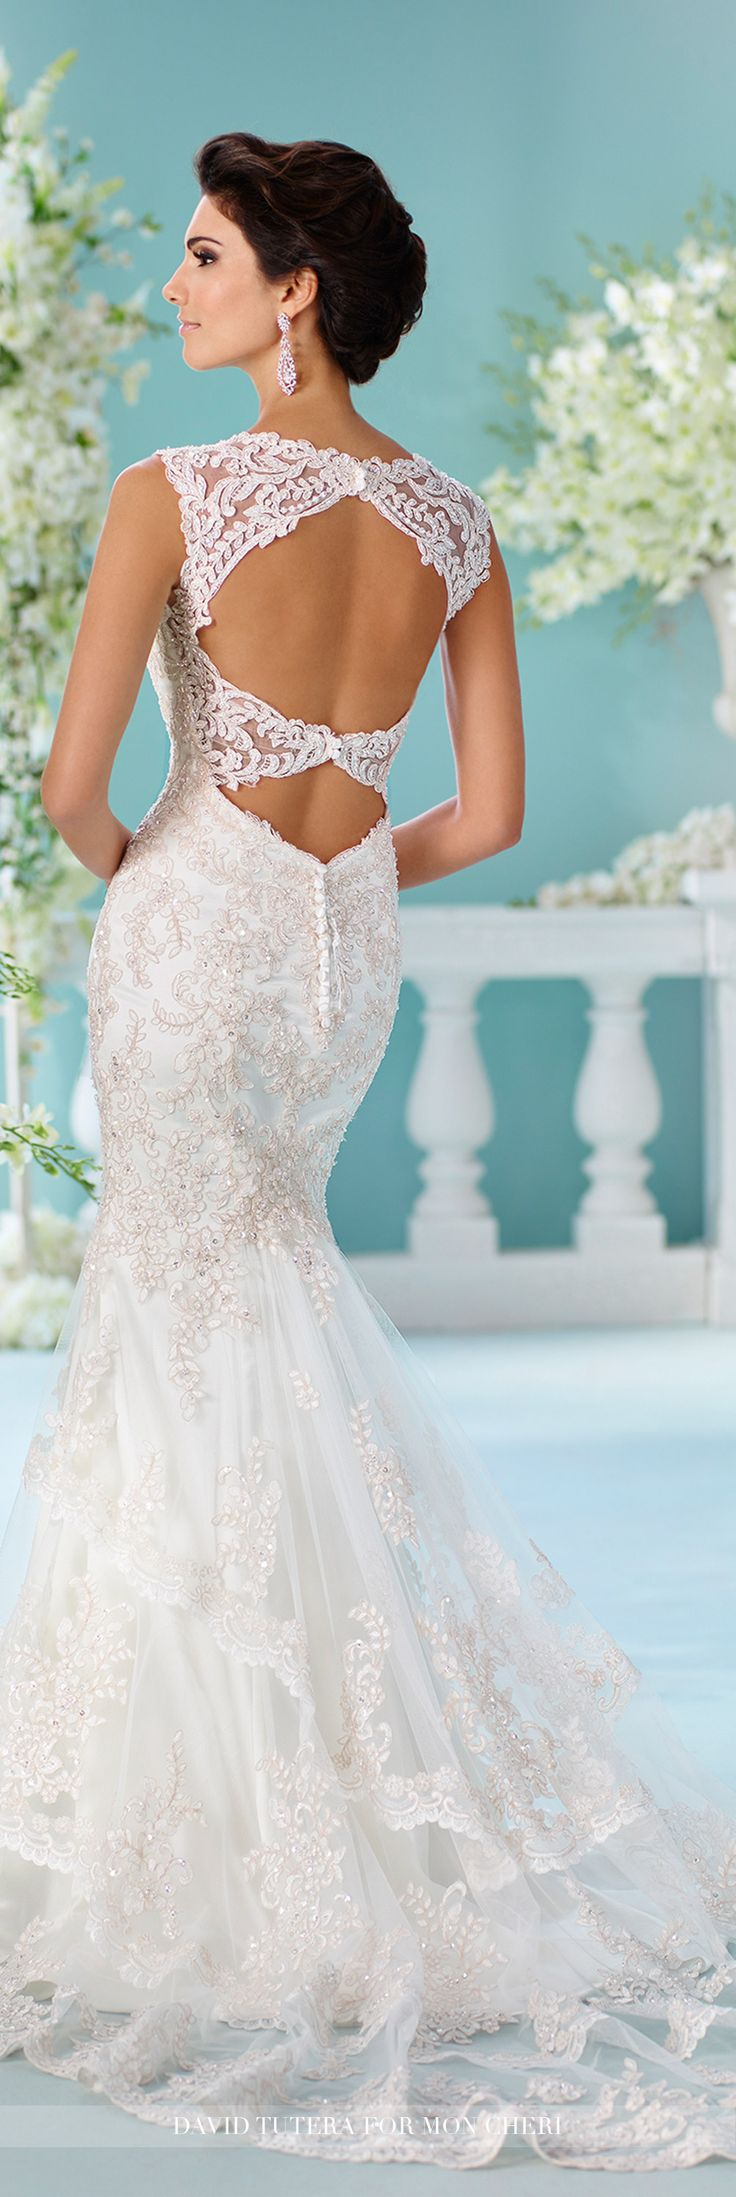 768 best 2016 Wedding Dresses images on Pinterest | Short wedding ...